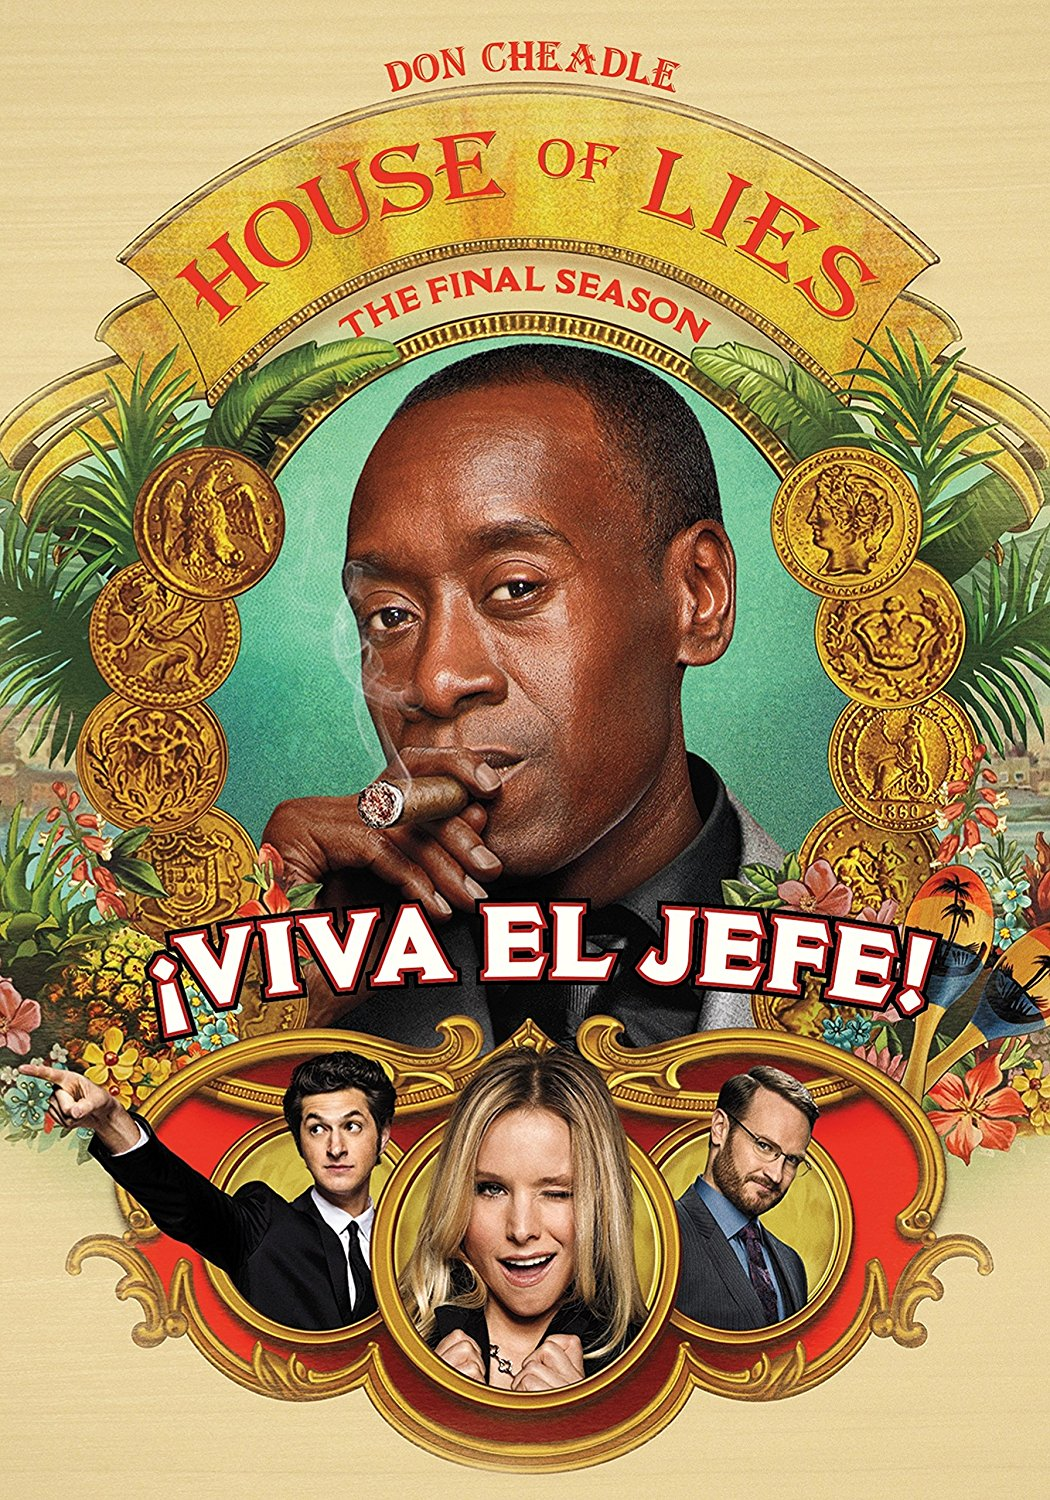 House of Lies Final Season DVD